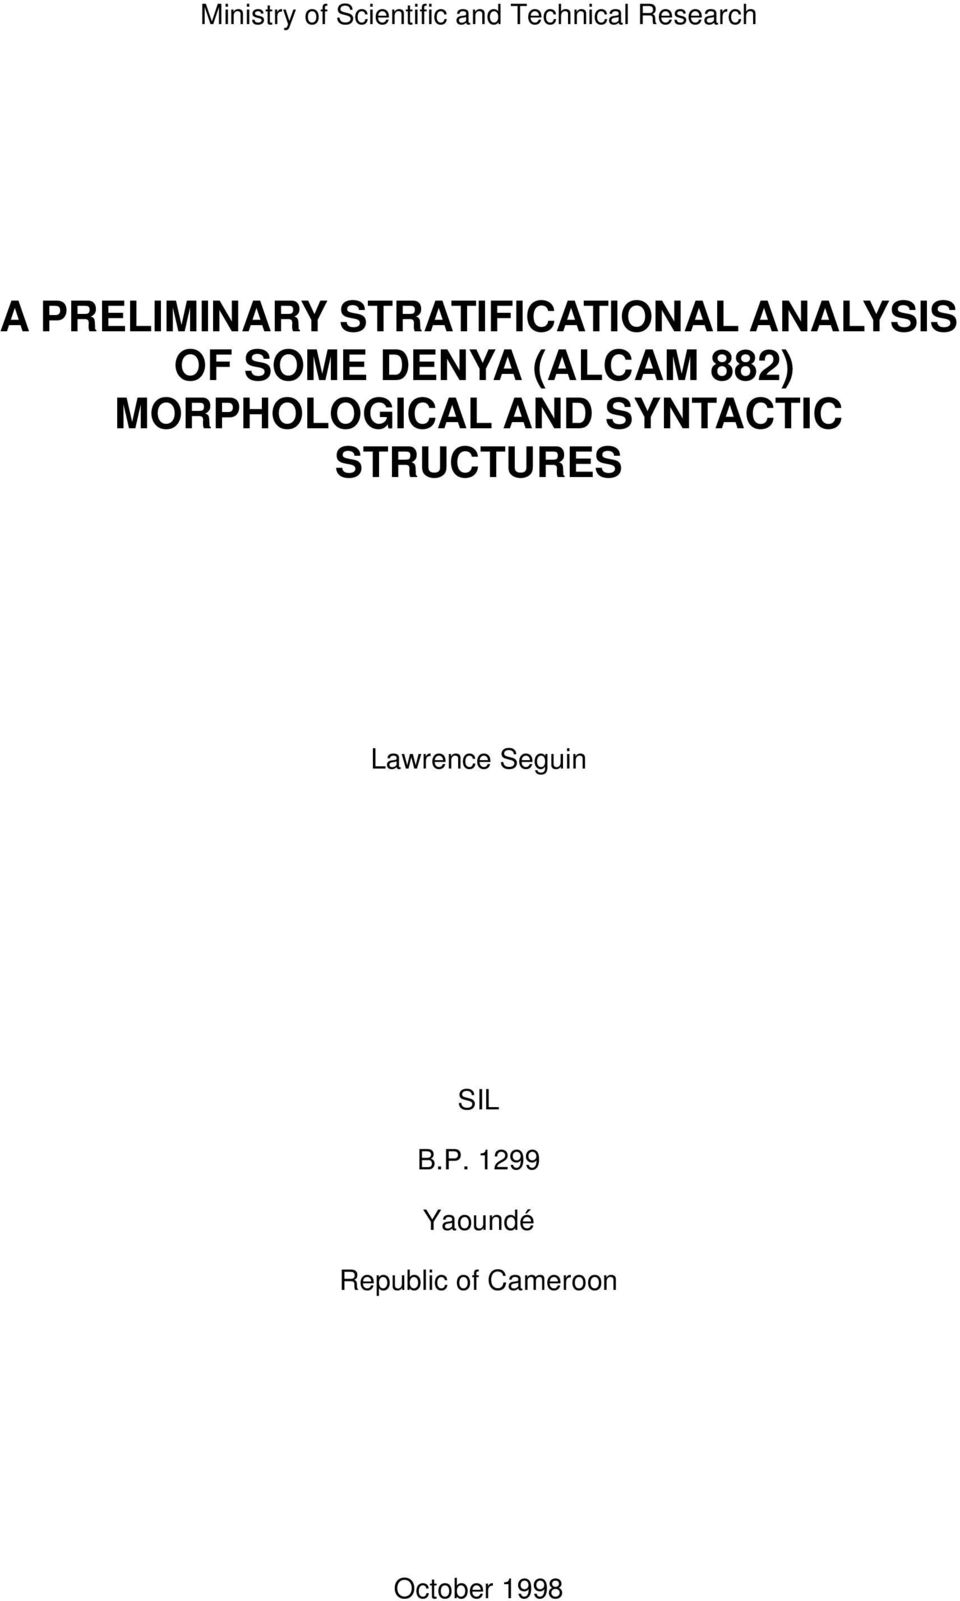 (ALCAM 882) MORPHOLOGICAL AND SYNTACTIC STRUCTURES